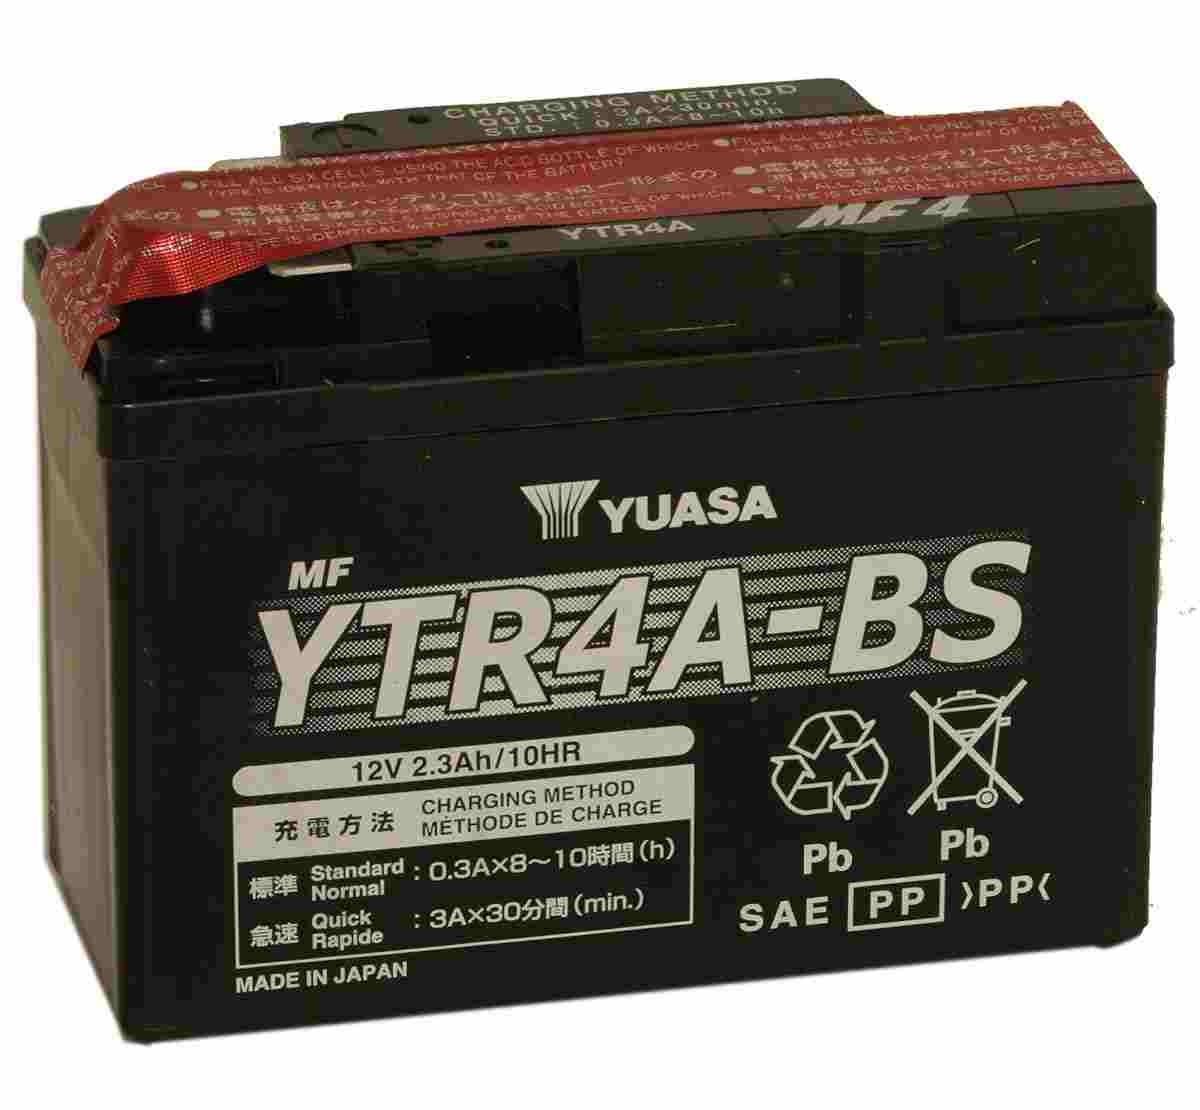 Battery for scooter or moped model brand YUASA 12V 2.3Ah YTR4A-BS.